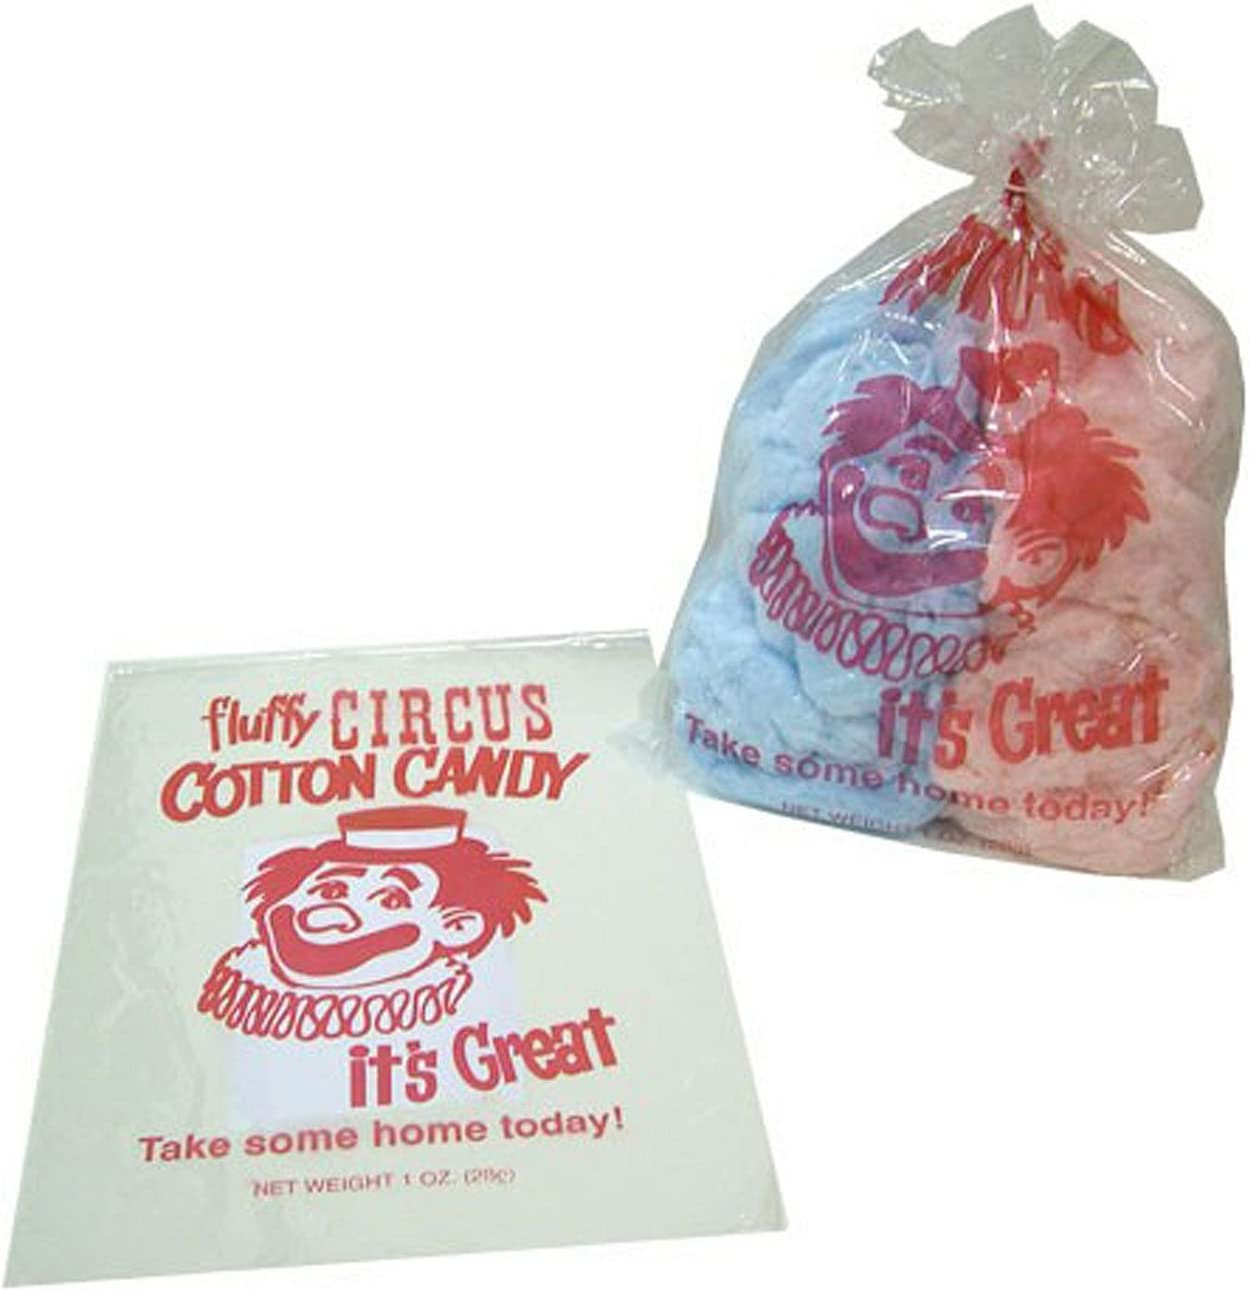 100 Cotton Candy Bags-Circus Clown-Gold Metal New